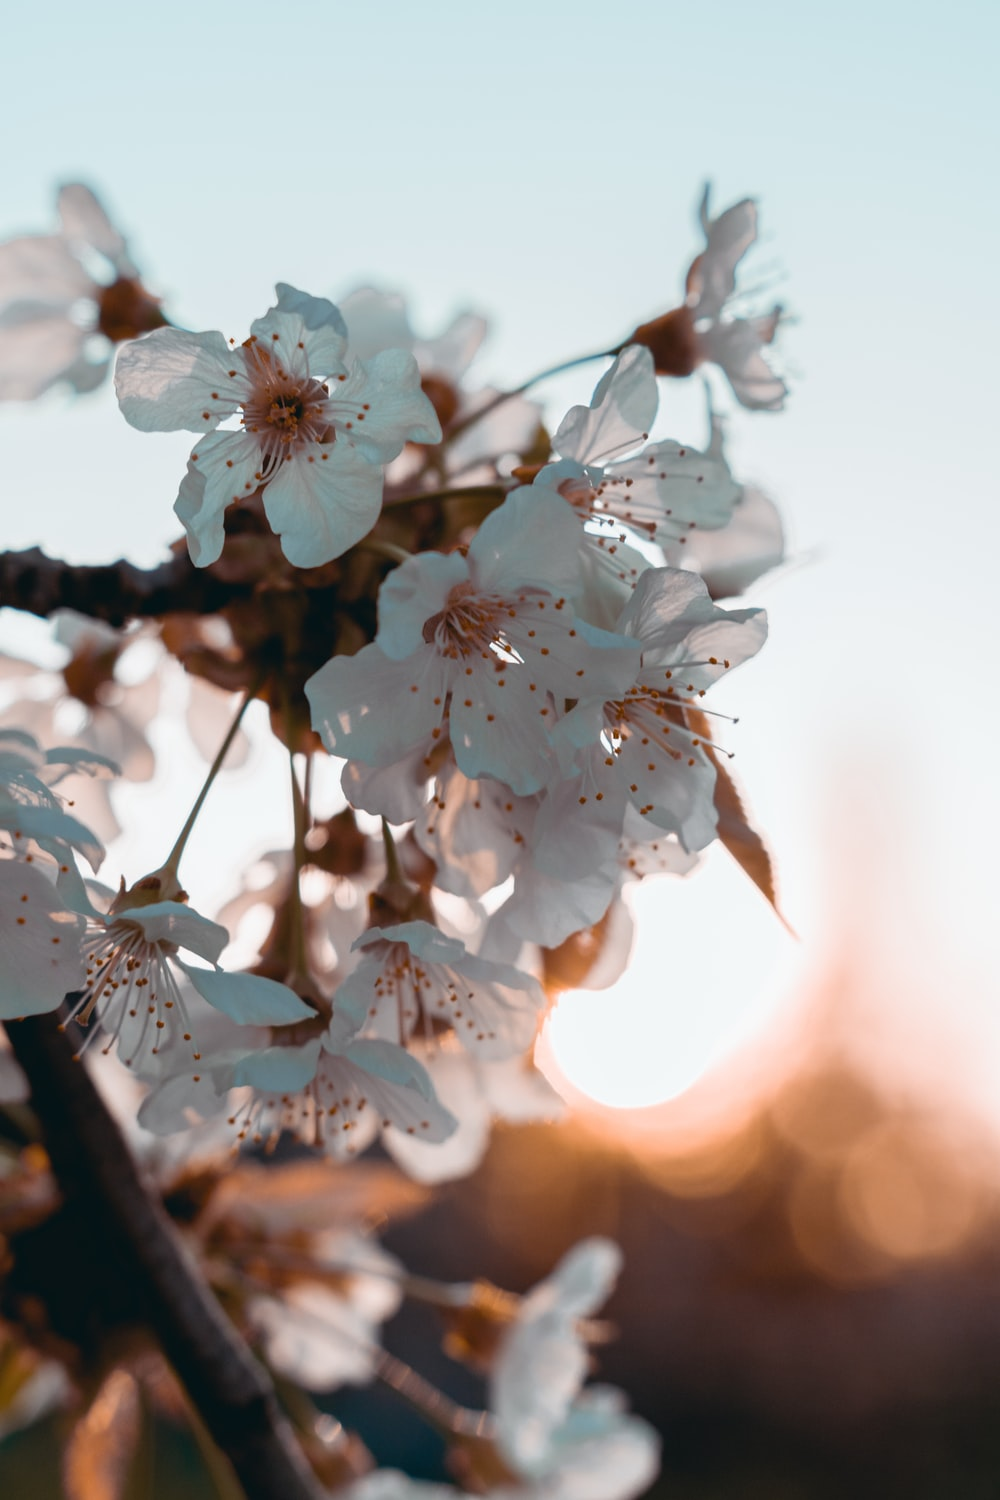 white cherry blossom in close up photography during daytime